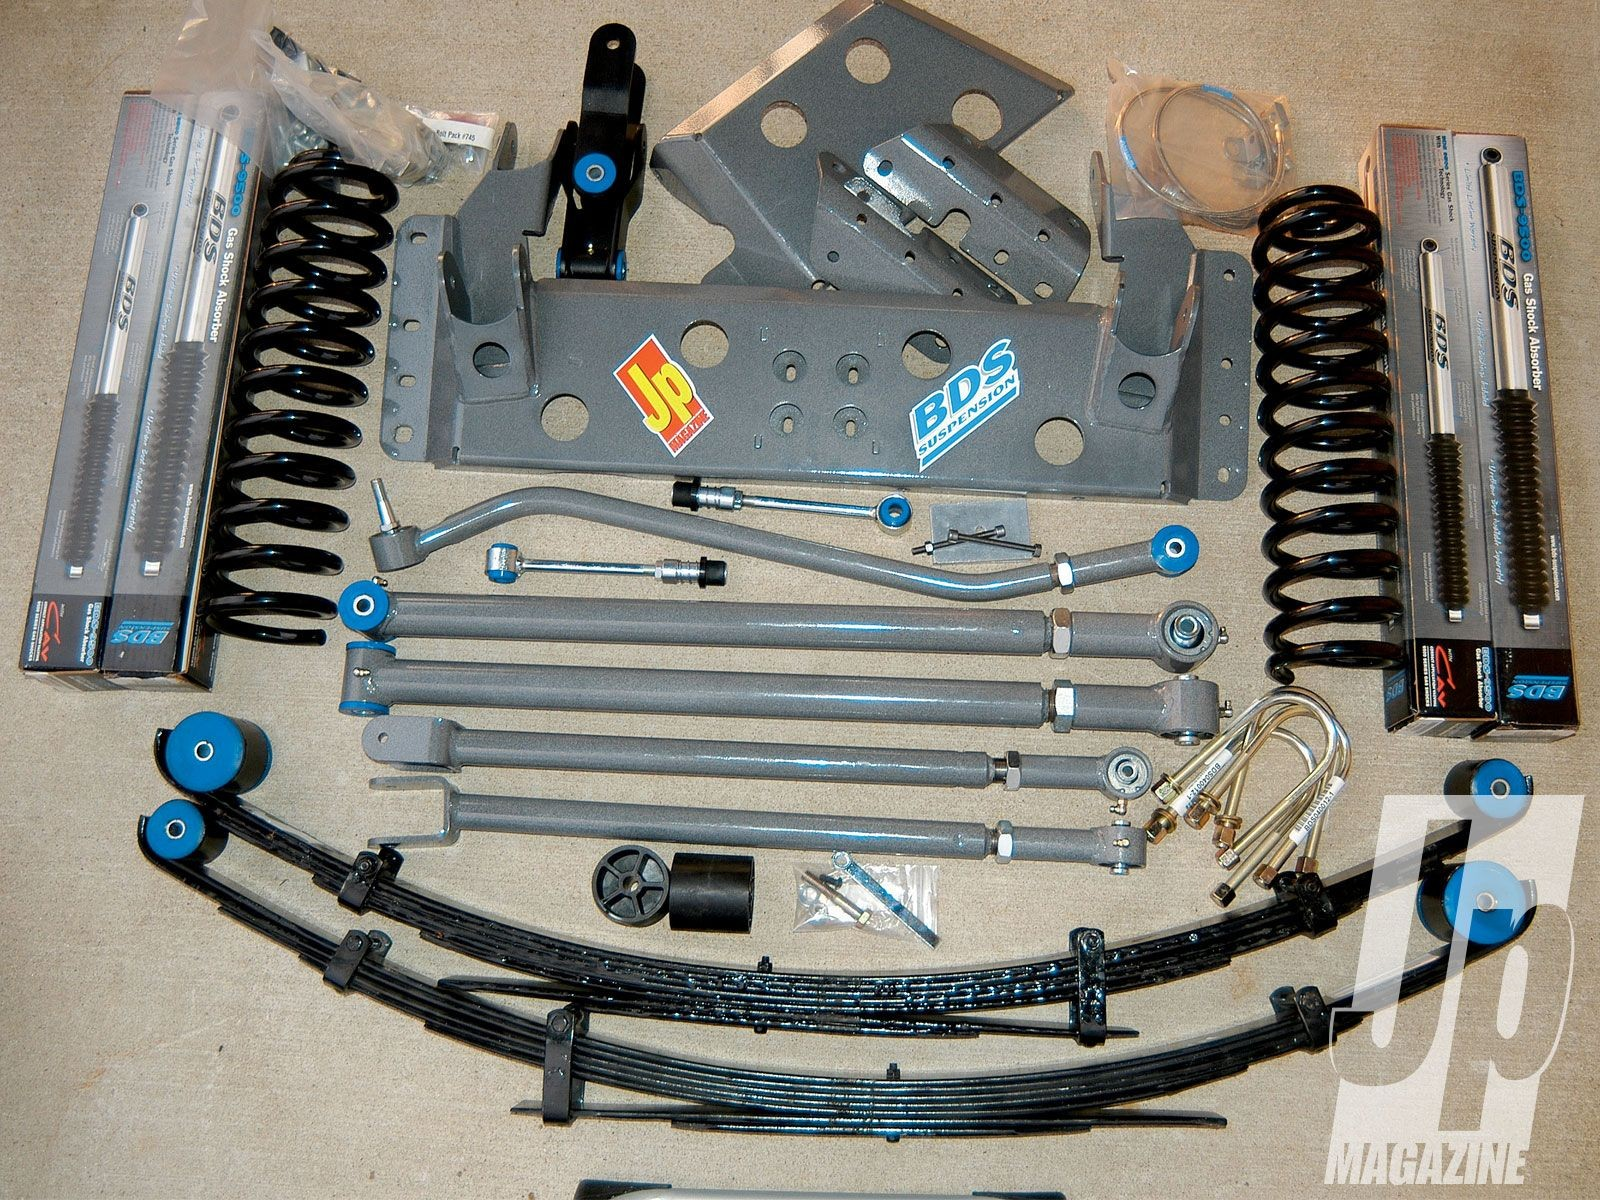 Jeep 4 0 Liter Engine Diagram Jeep Cherokee Bds Long Arm Lift Kit Shoehorn Xj Xj Jeep Of Jeep 4 0 Liter Engine Diagram